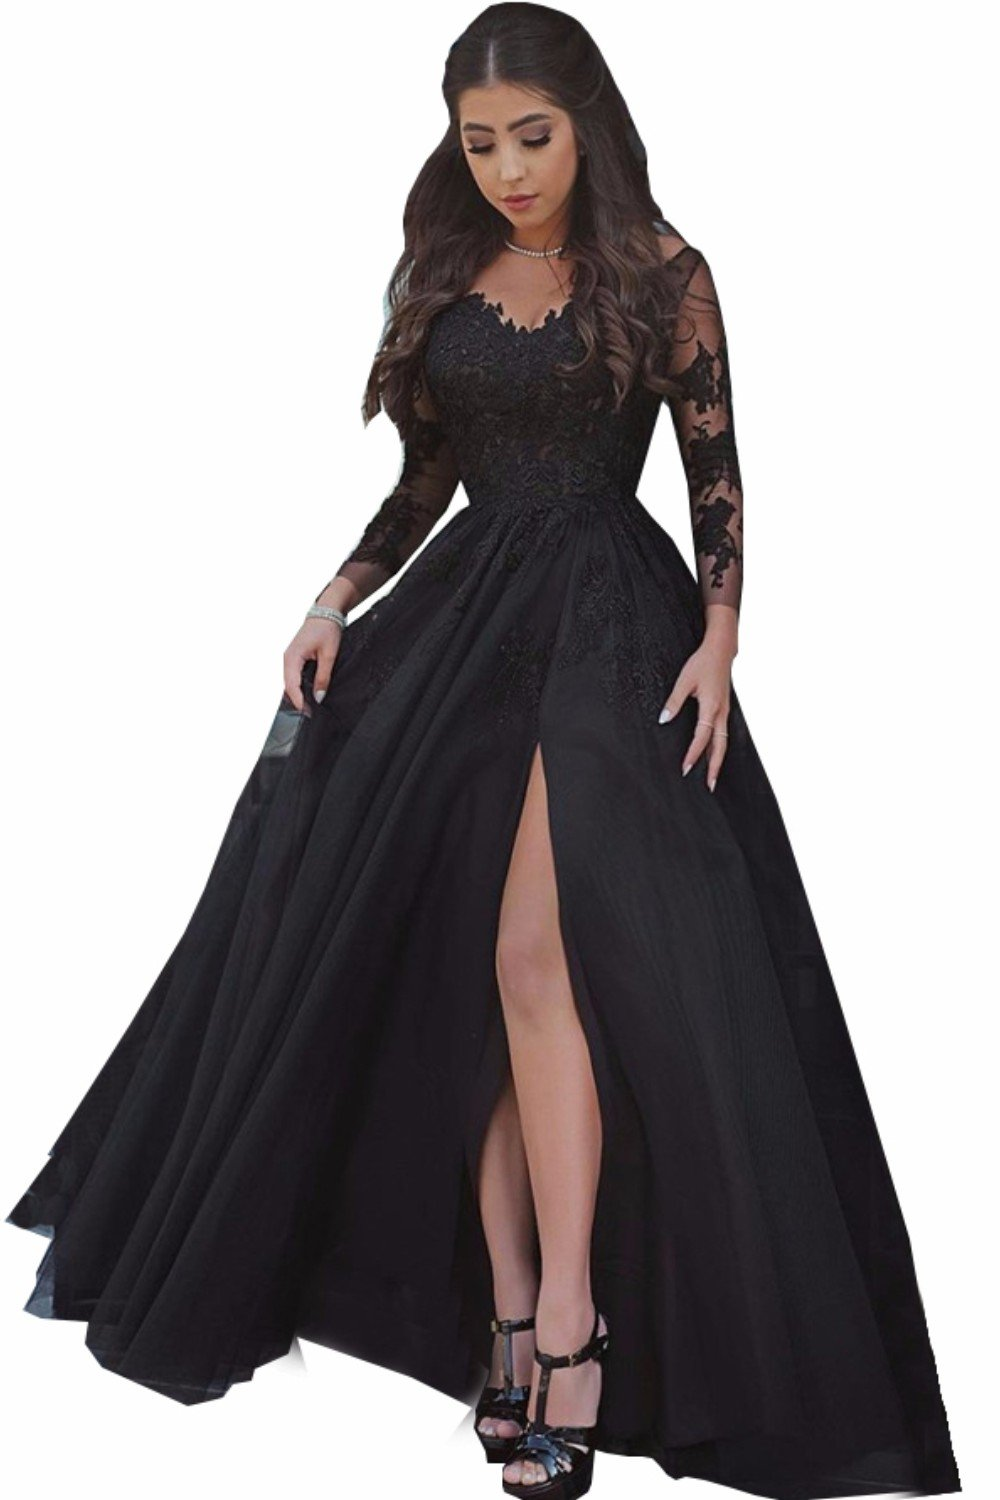 MariRobe Women's Lace Appliques Long Sleeves Illusion Slit Evening Dress Formal Party Gown US16